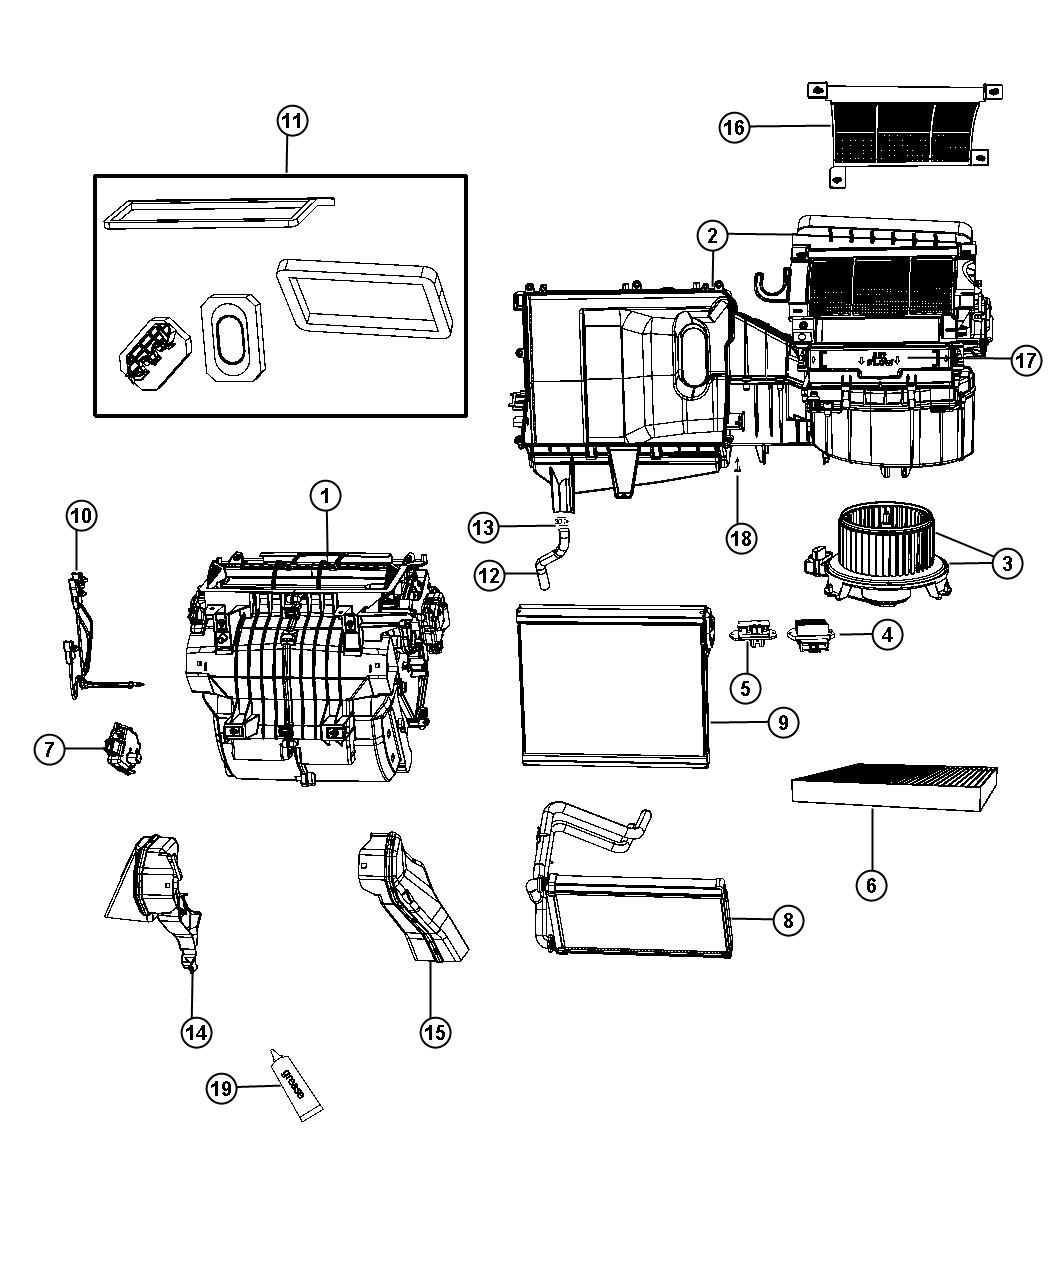 2011 Dodge Express Seal kit. A/c and heater unit